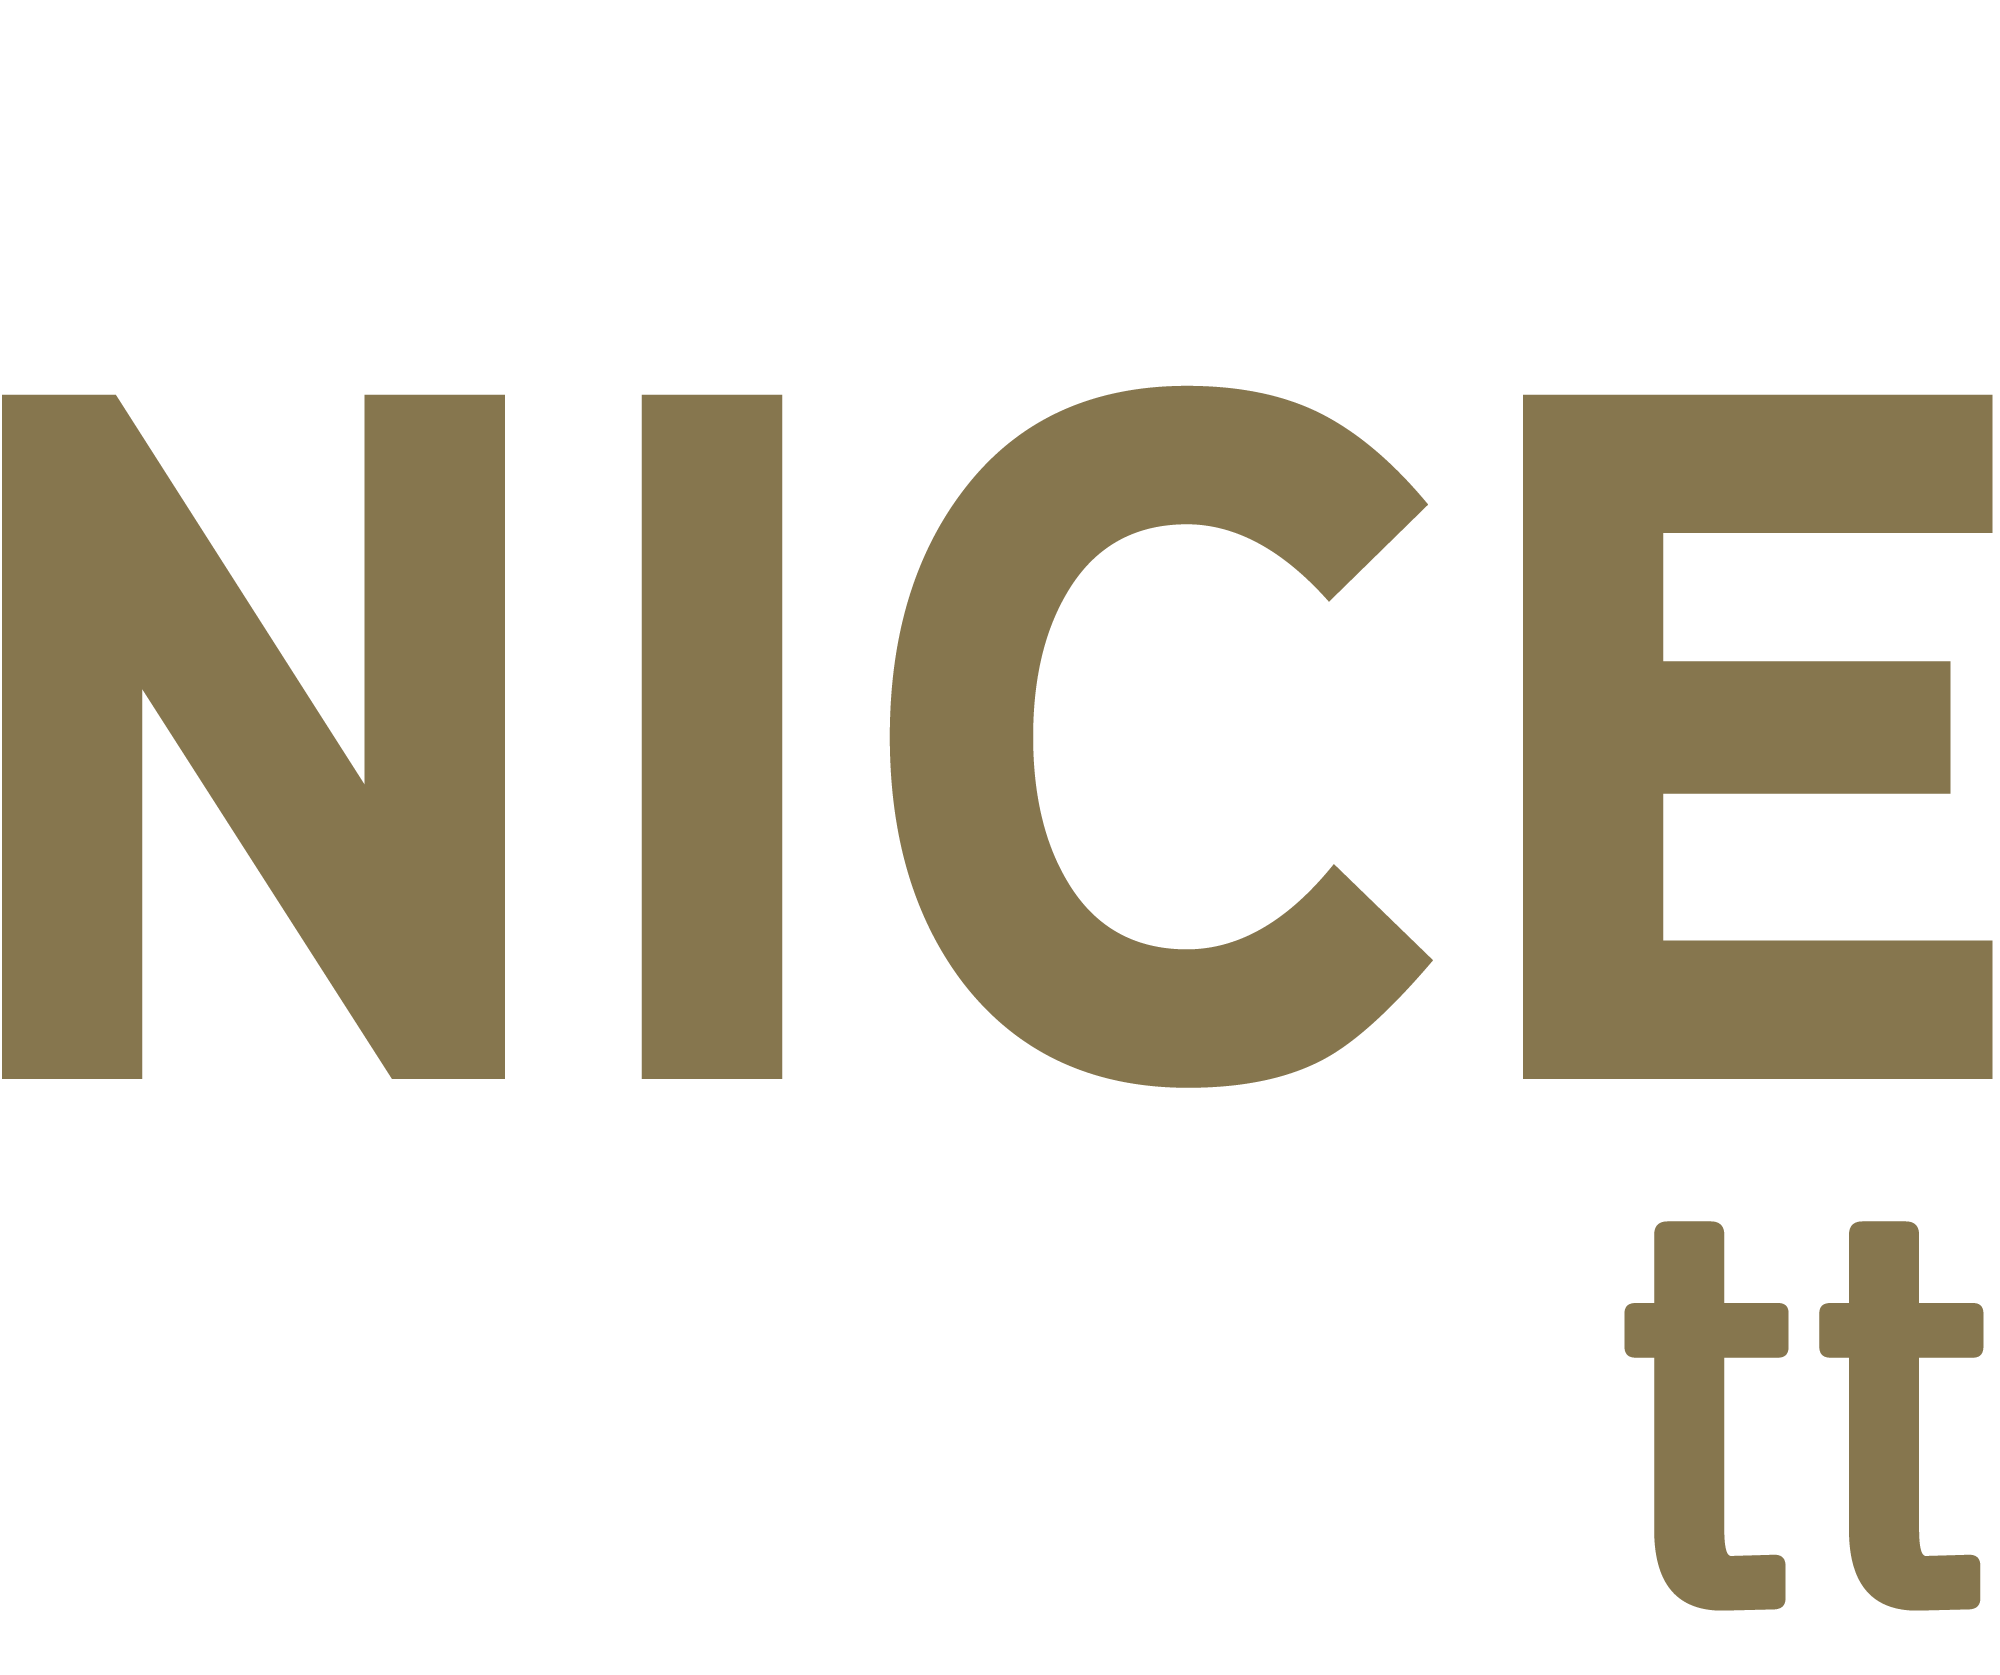 Nice by Elliott